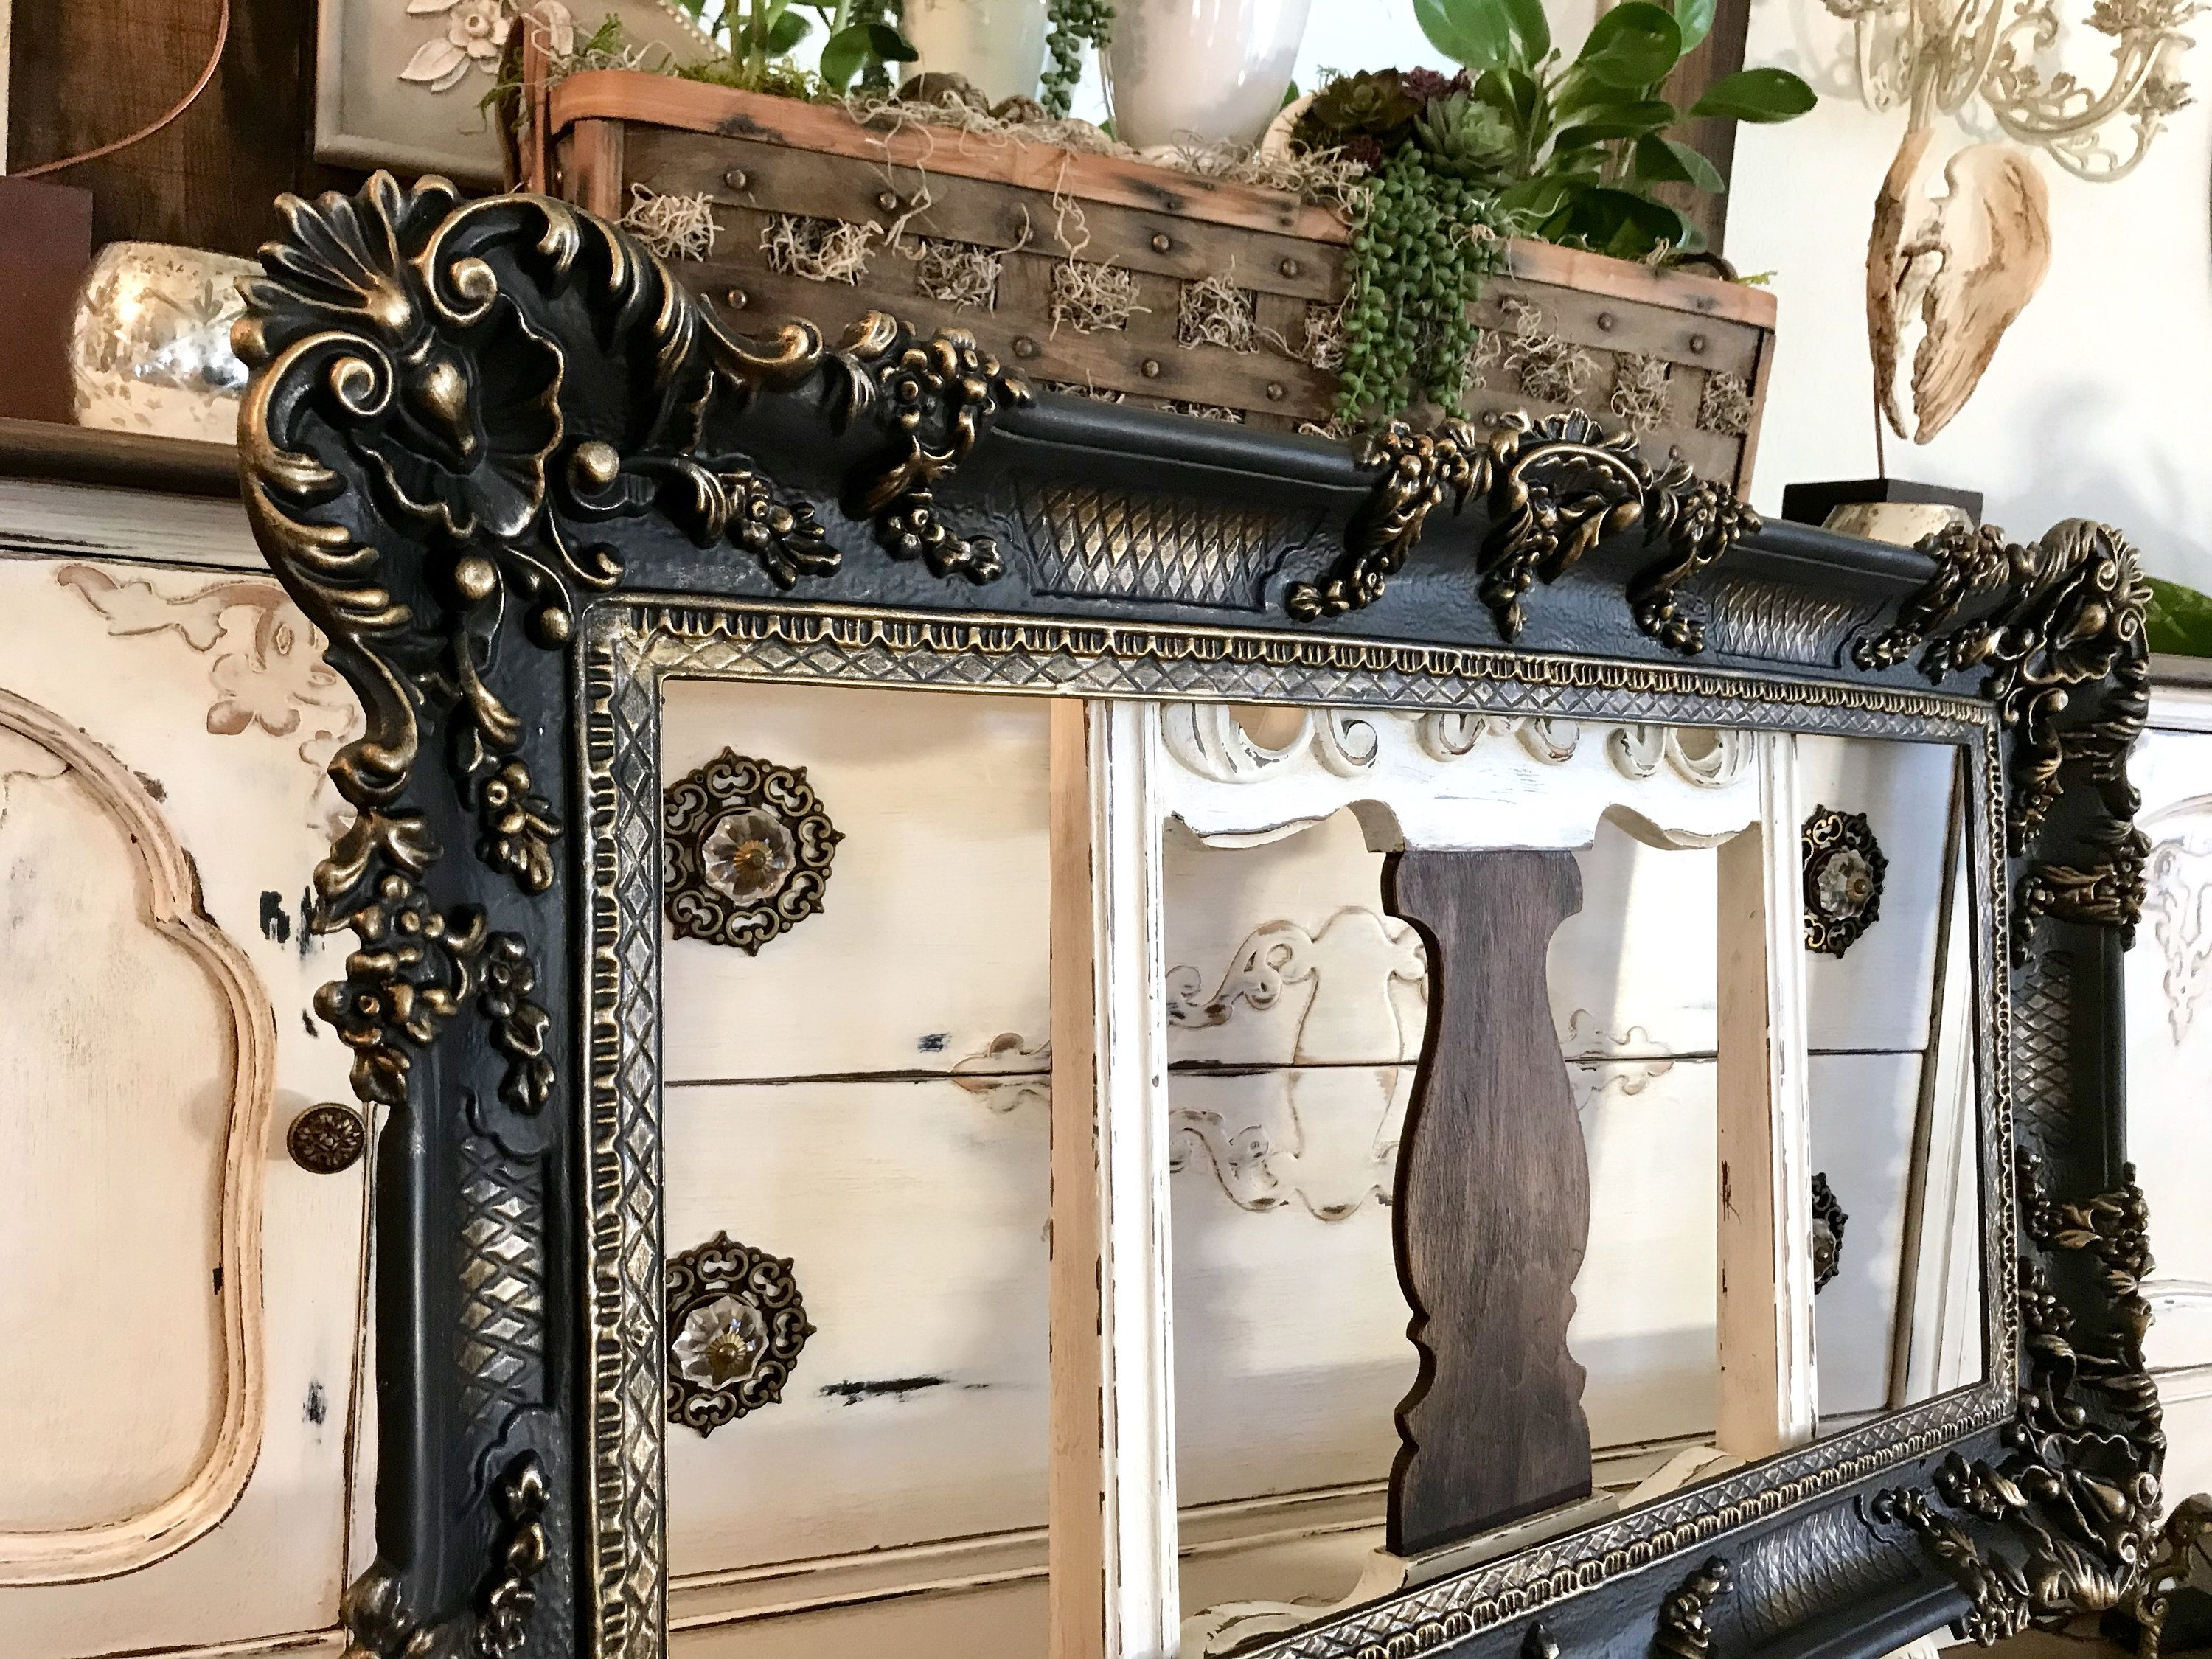 Your Place To Buy And Sell All Things Handmade Gold Ornate Mirror Frames On Wall Vintage Gold Mirror